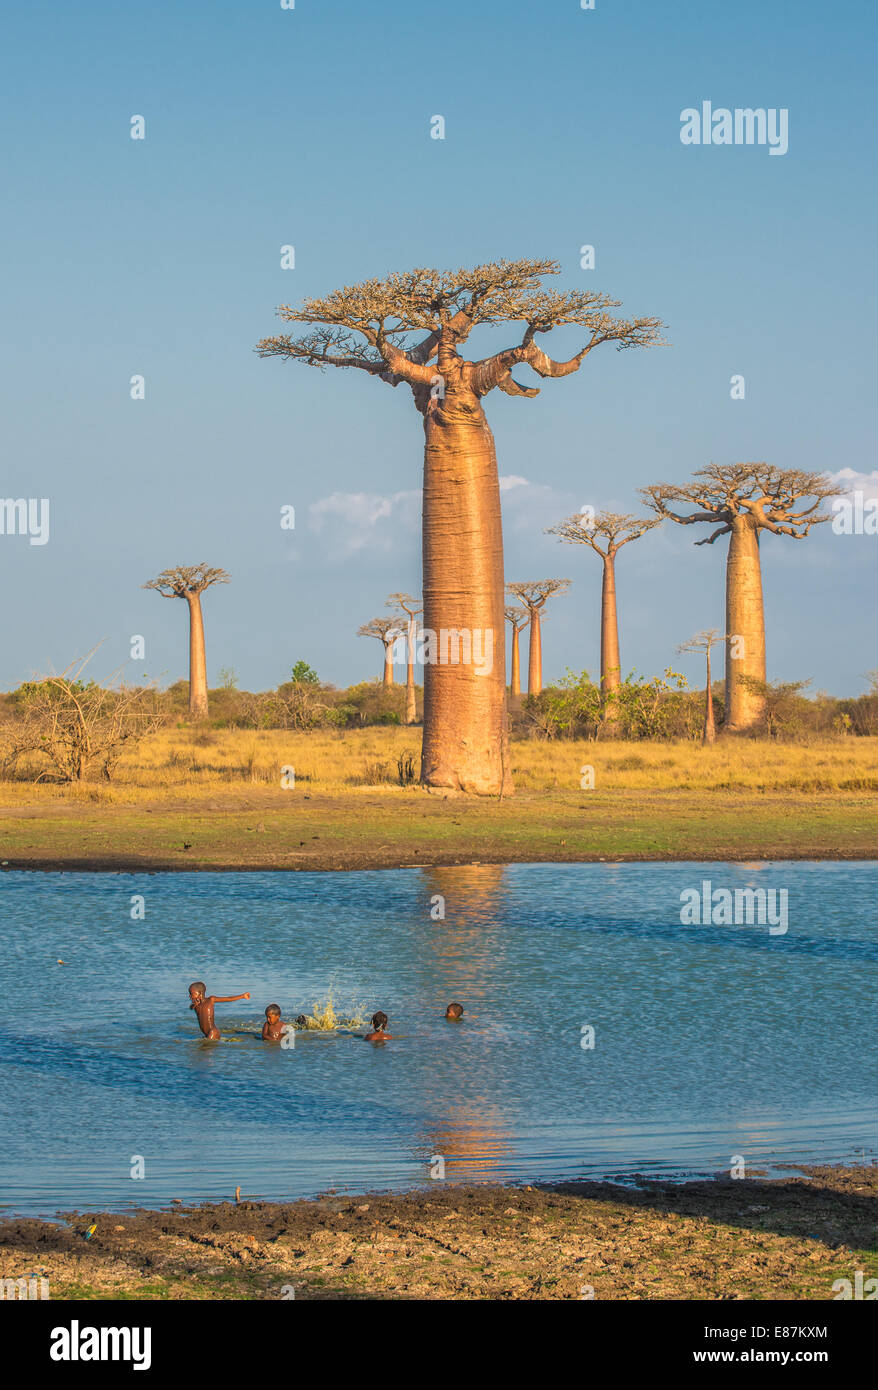 Avenue of the baobabs, Madagascar - Stock Image